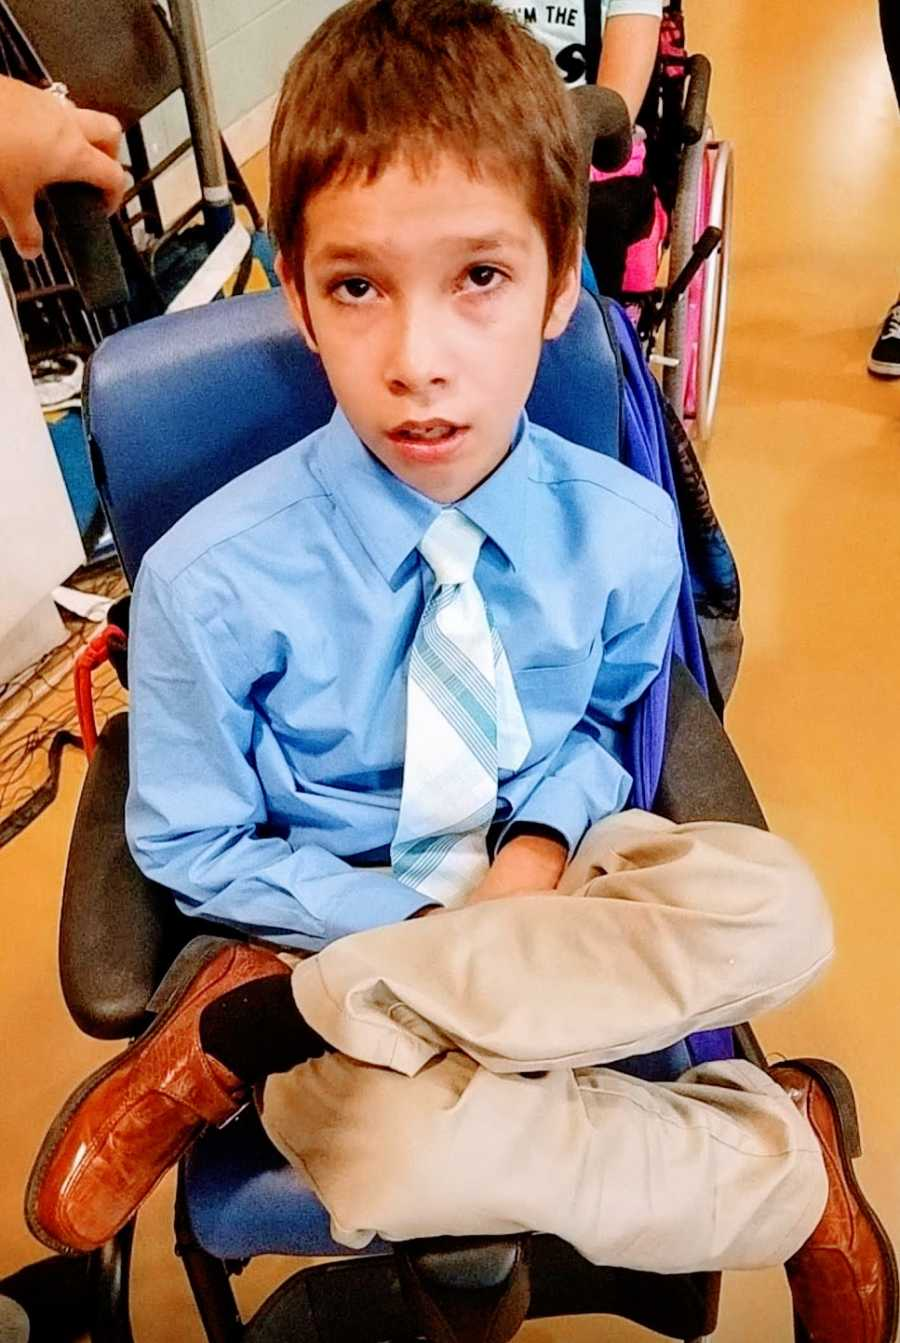 A boy with a rare chromosome disorder sitting in a wheelchair wearing a tie